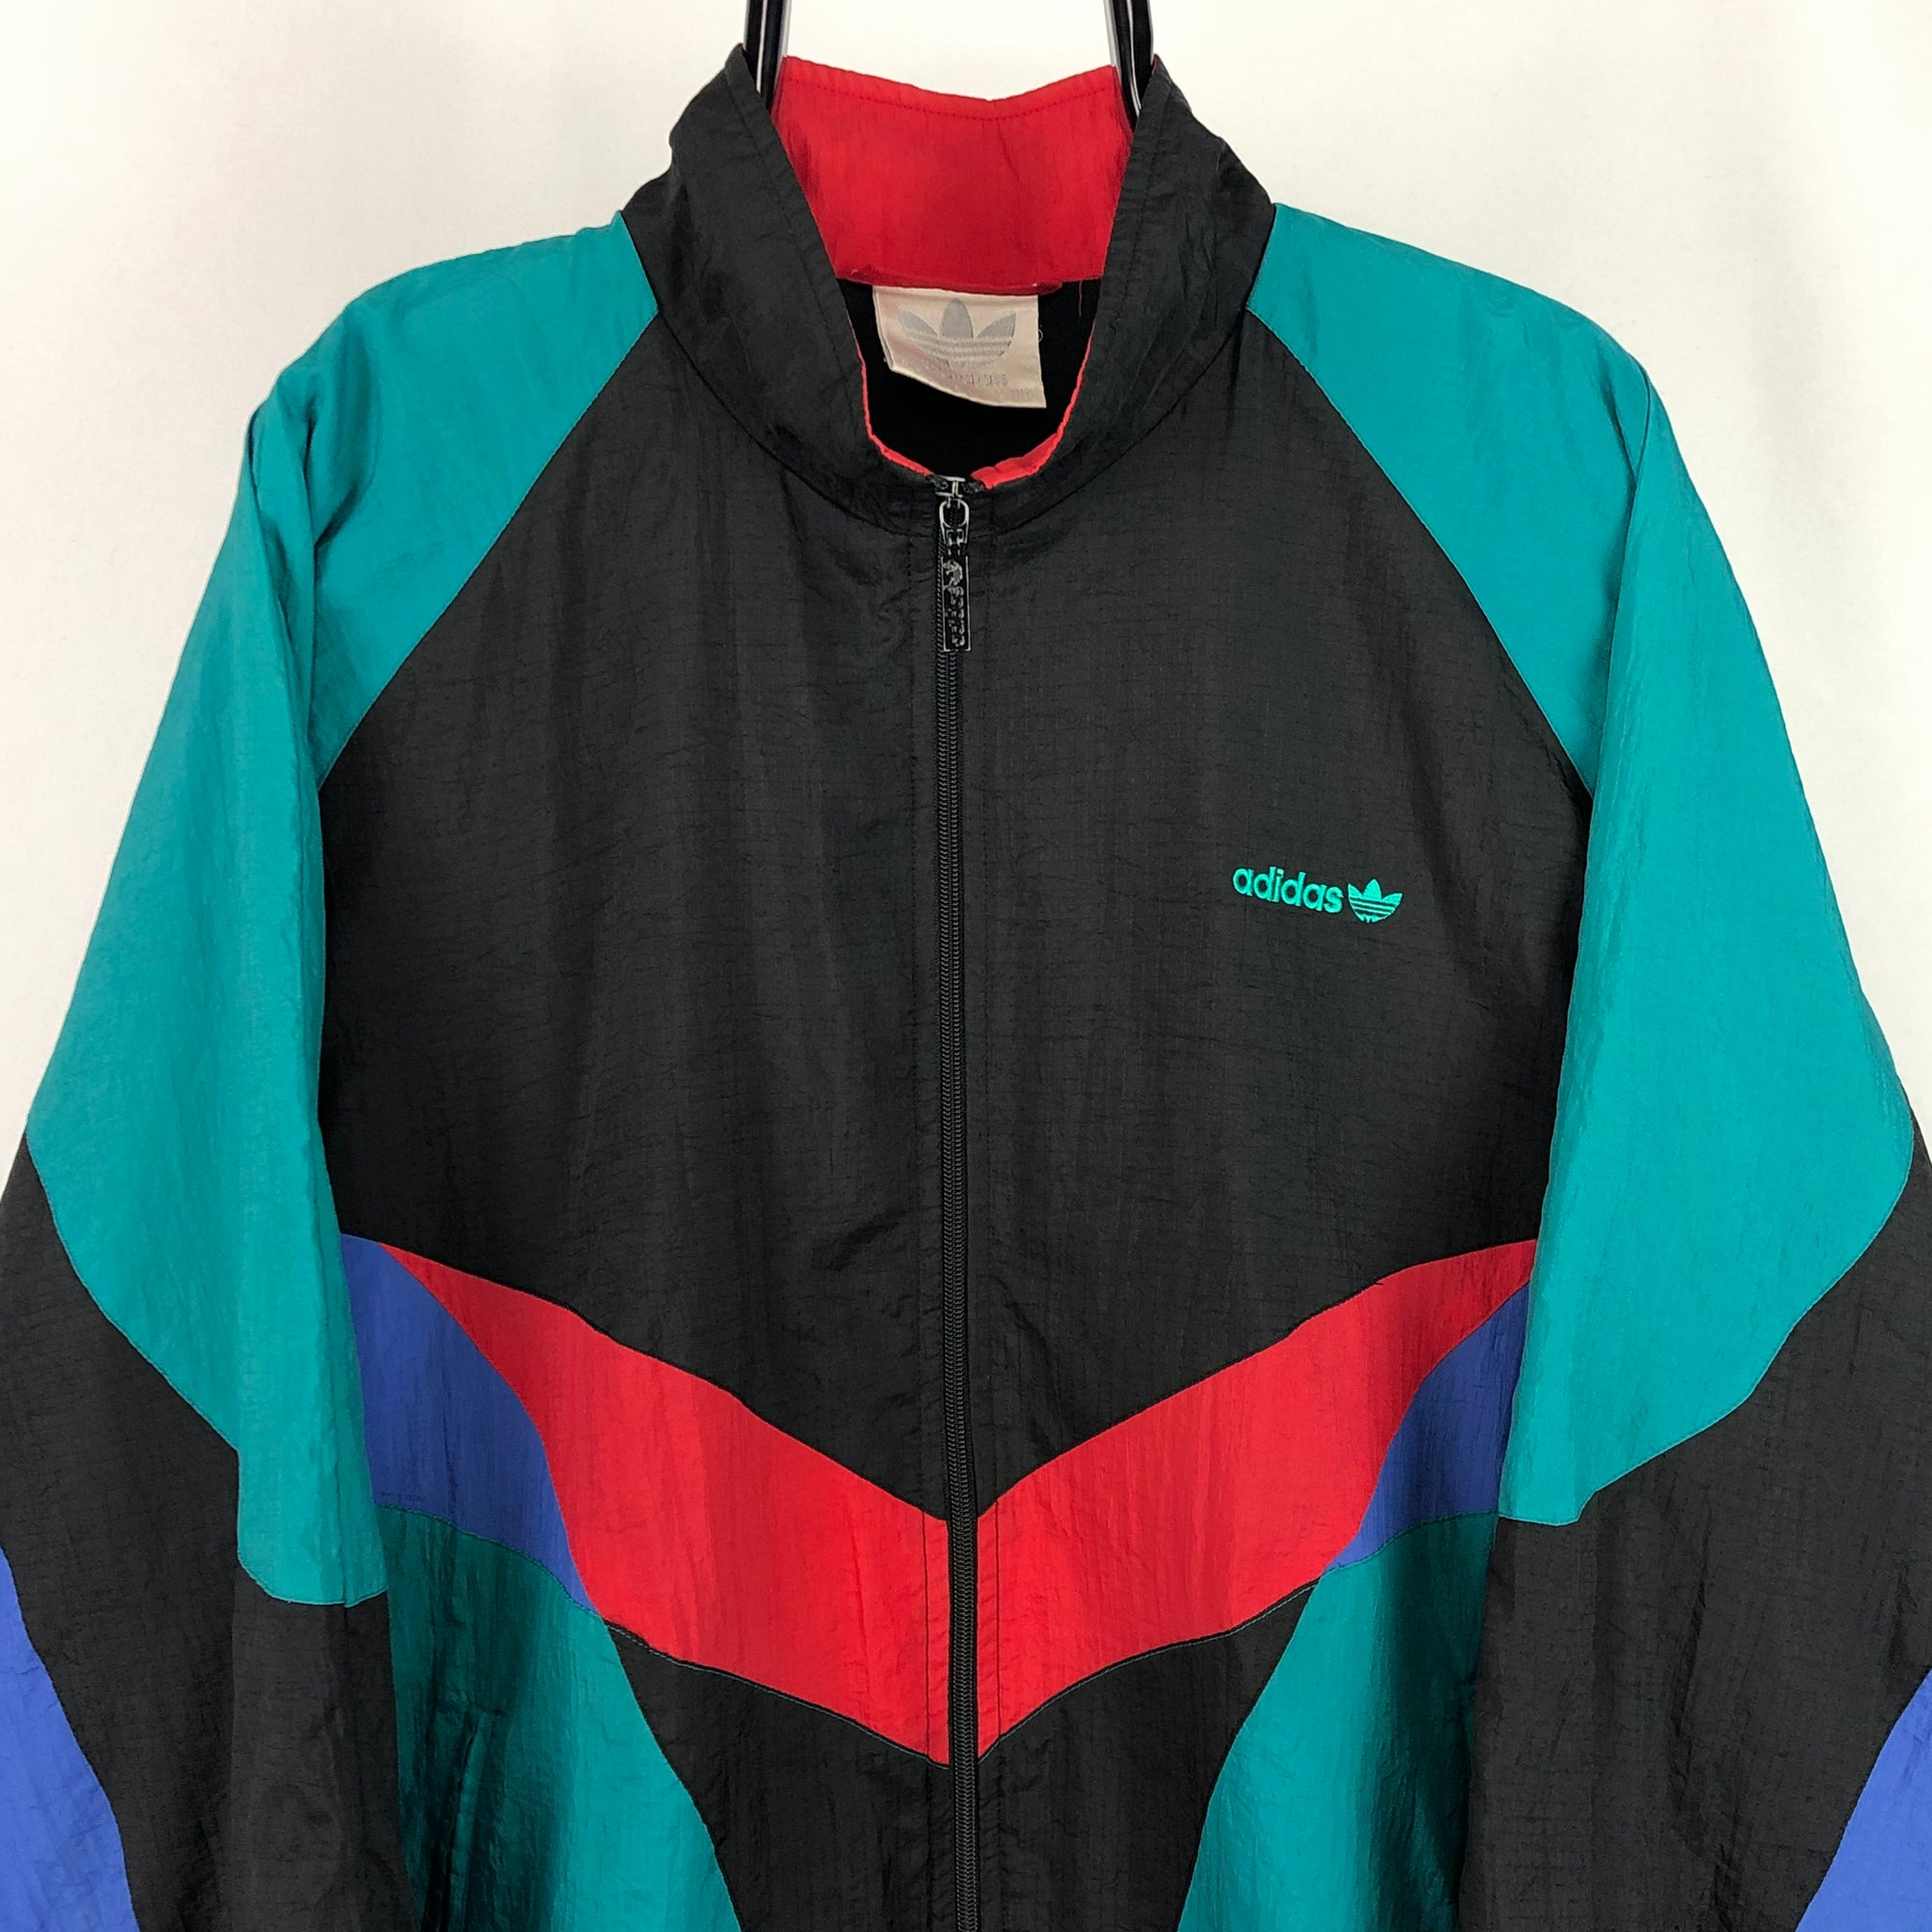 Vintage 80s Adidas Track Jacket - Men's Large/Women's XL